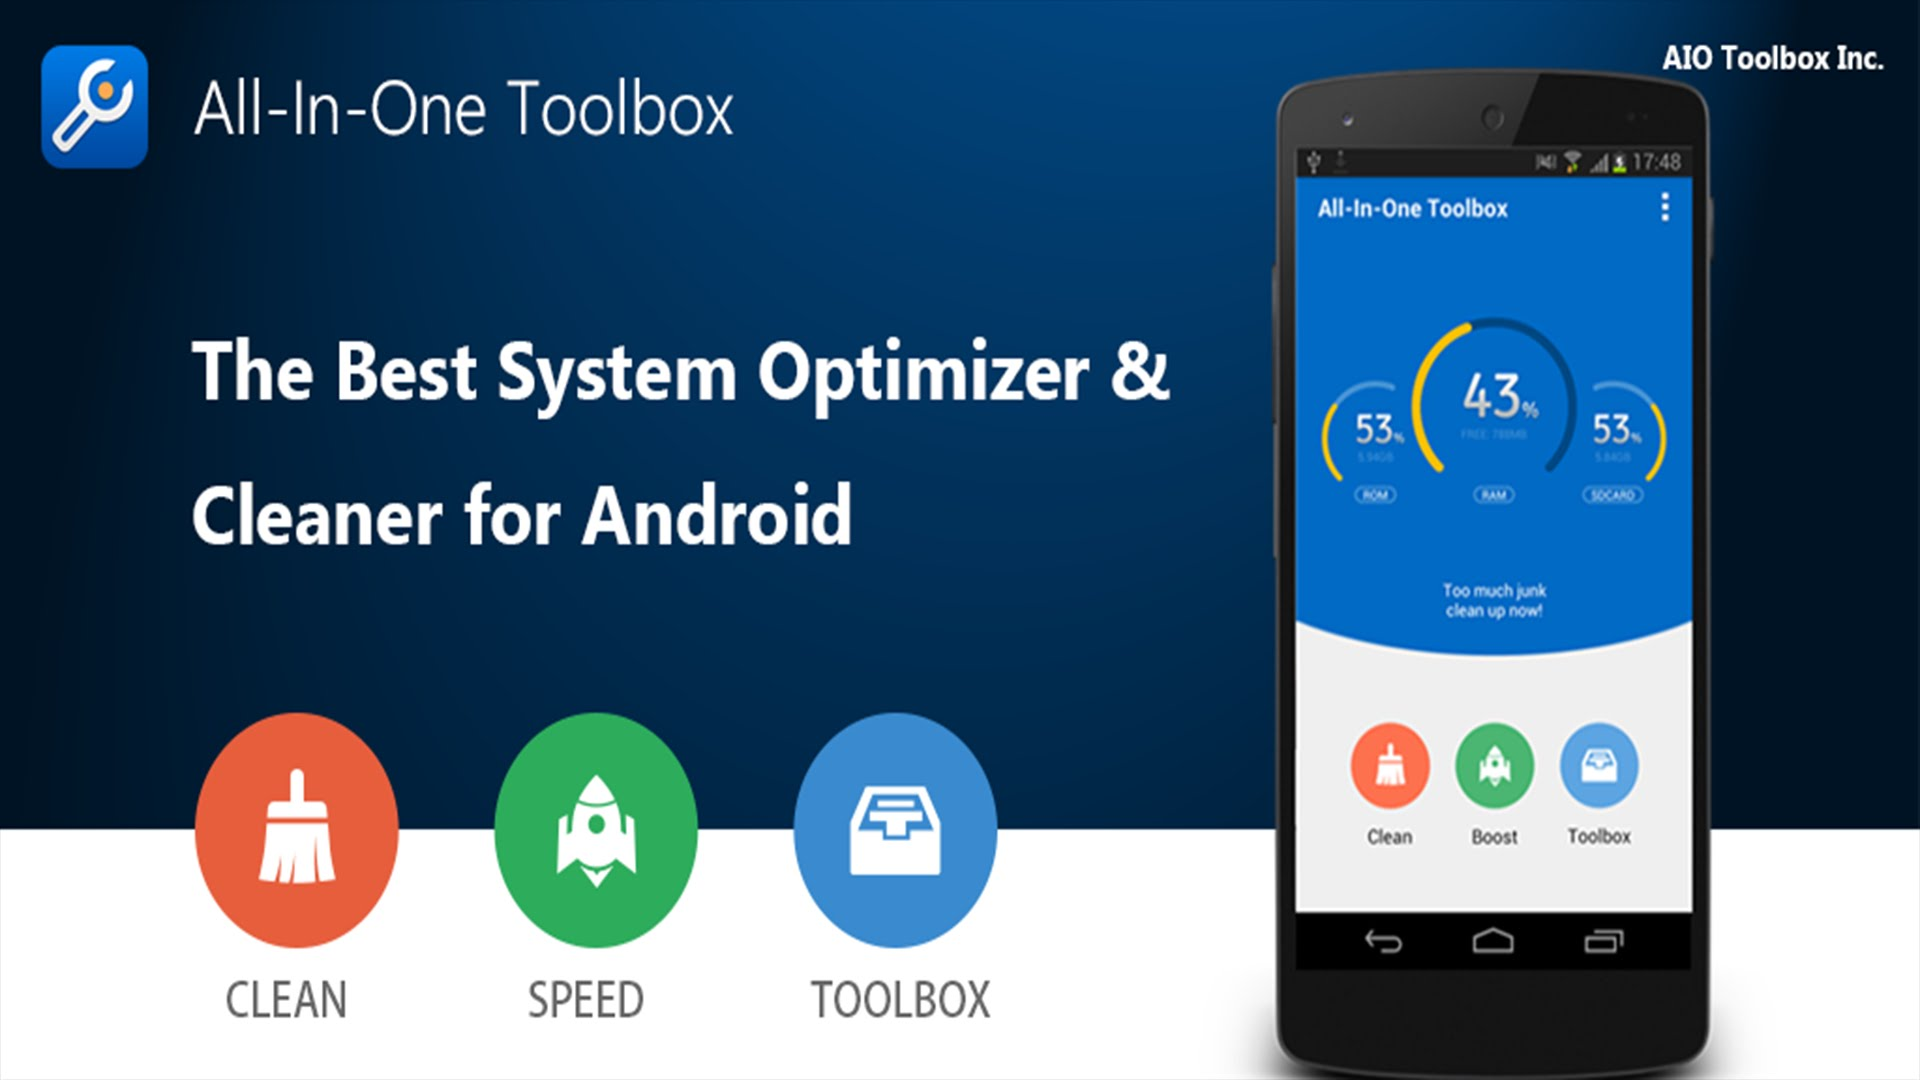 Phone Cleaner & Speed Booster App - Optimize Your Android Device